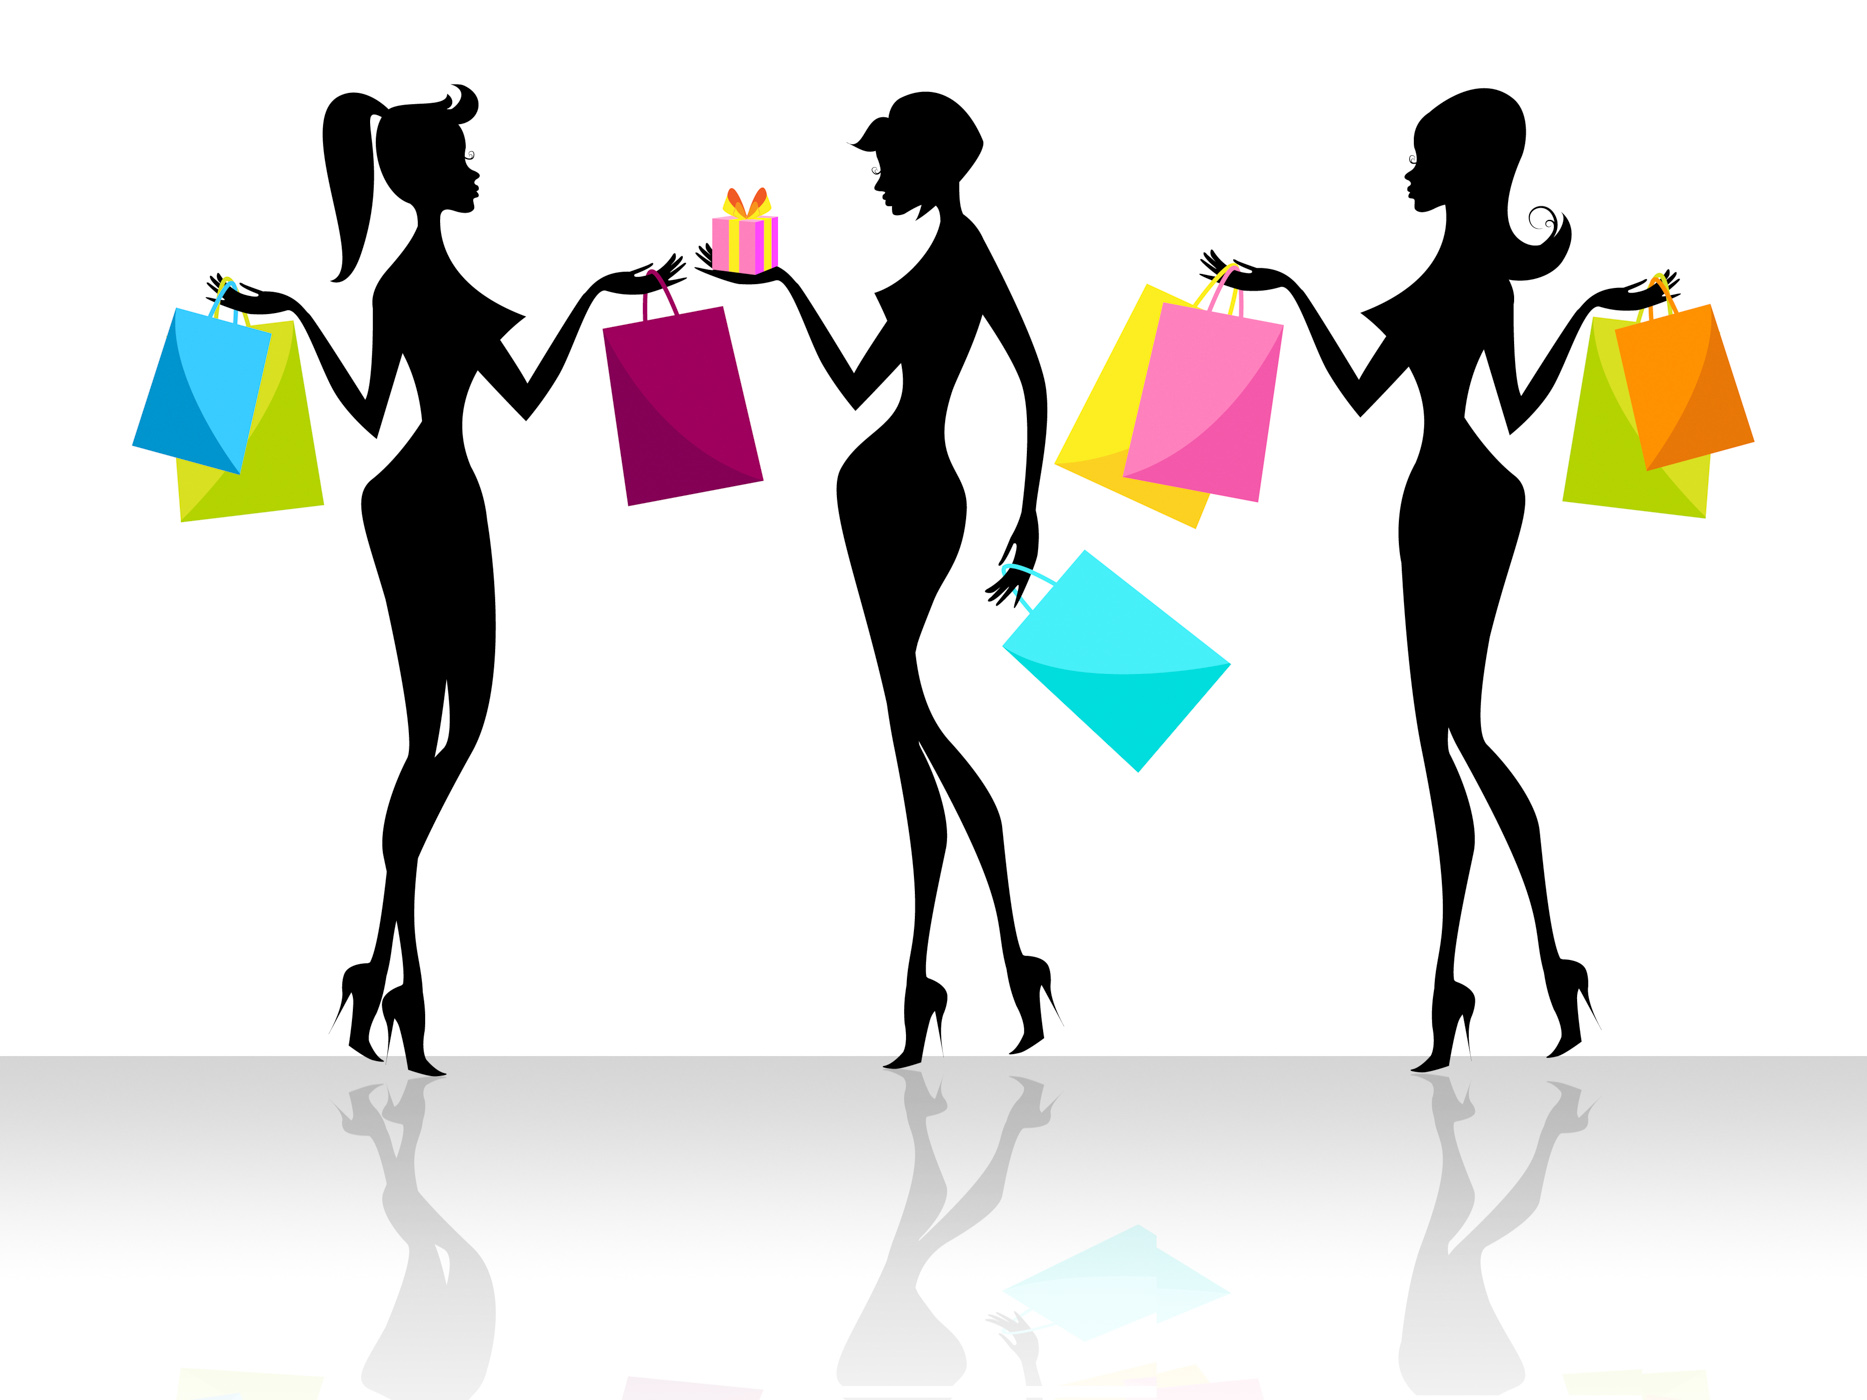 Shopping shopper indicates retail sales and adult photo